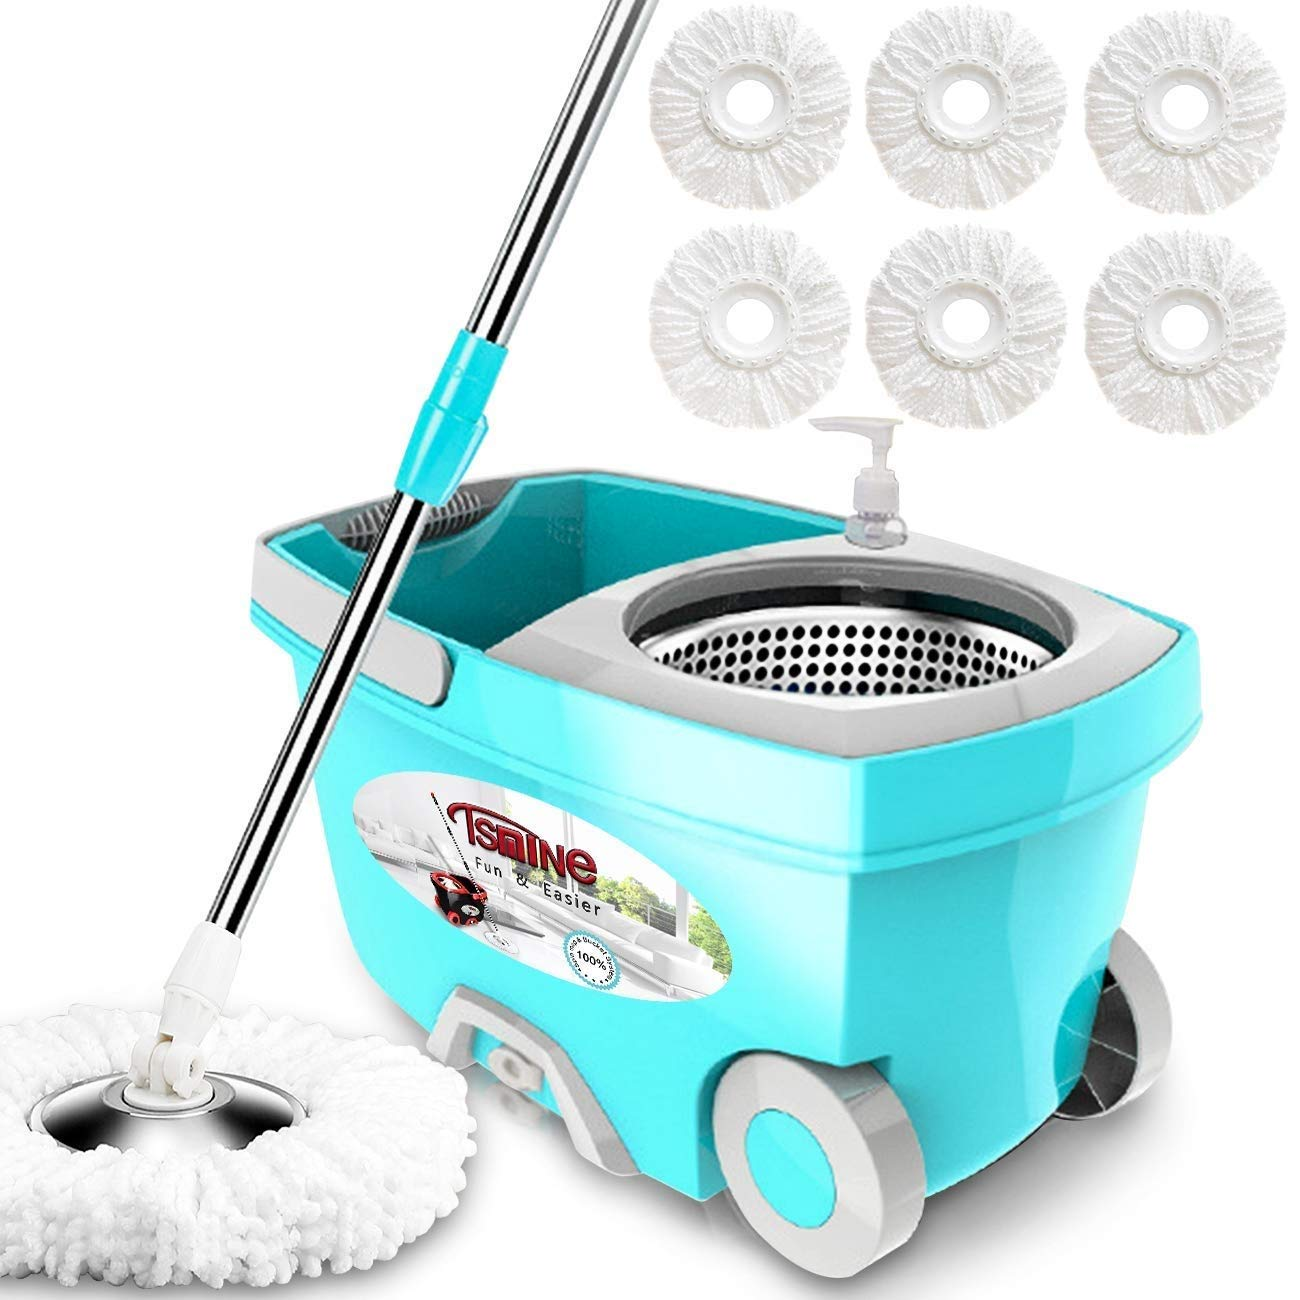 Tsmine Spin Mop Bucket System Deluxe Stainless Steel Spinning Mop with 61'' Silent Extended Handle, 2X Wheels, 6 Microfiber Replacement Head, Drain Outlet, Detergent Dispenser, for Home Cleaning